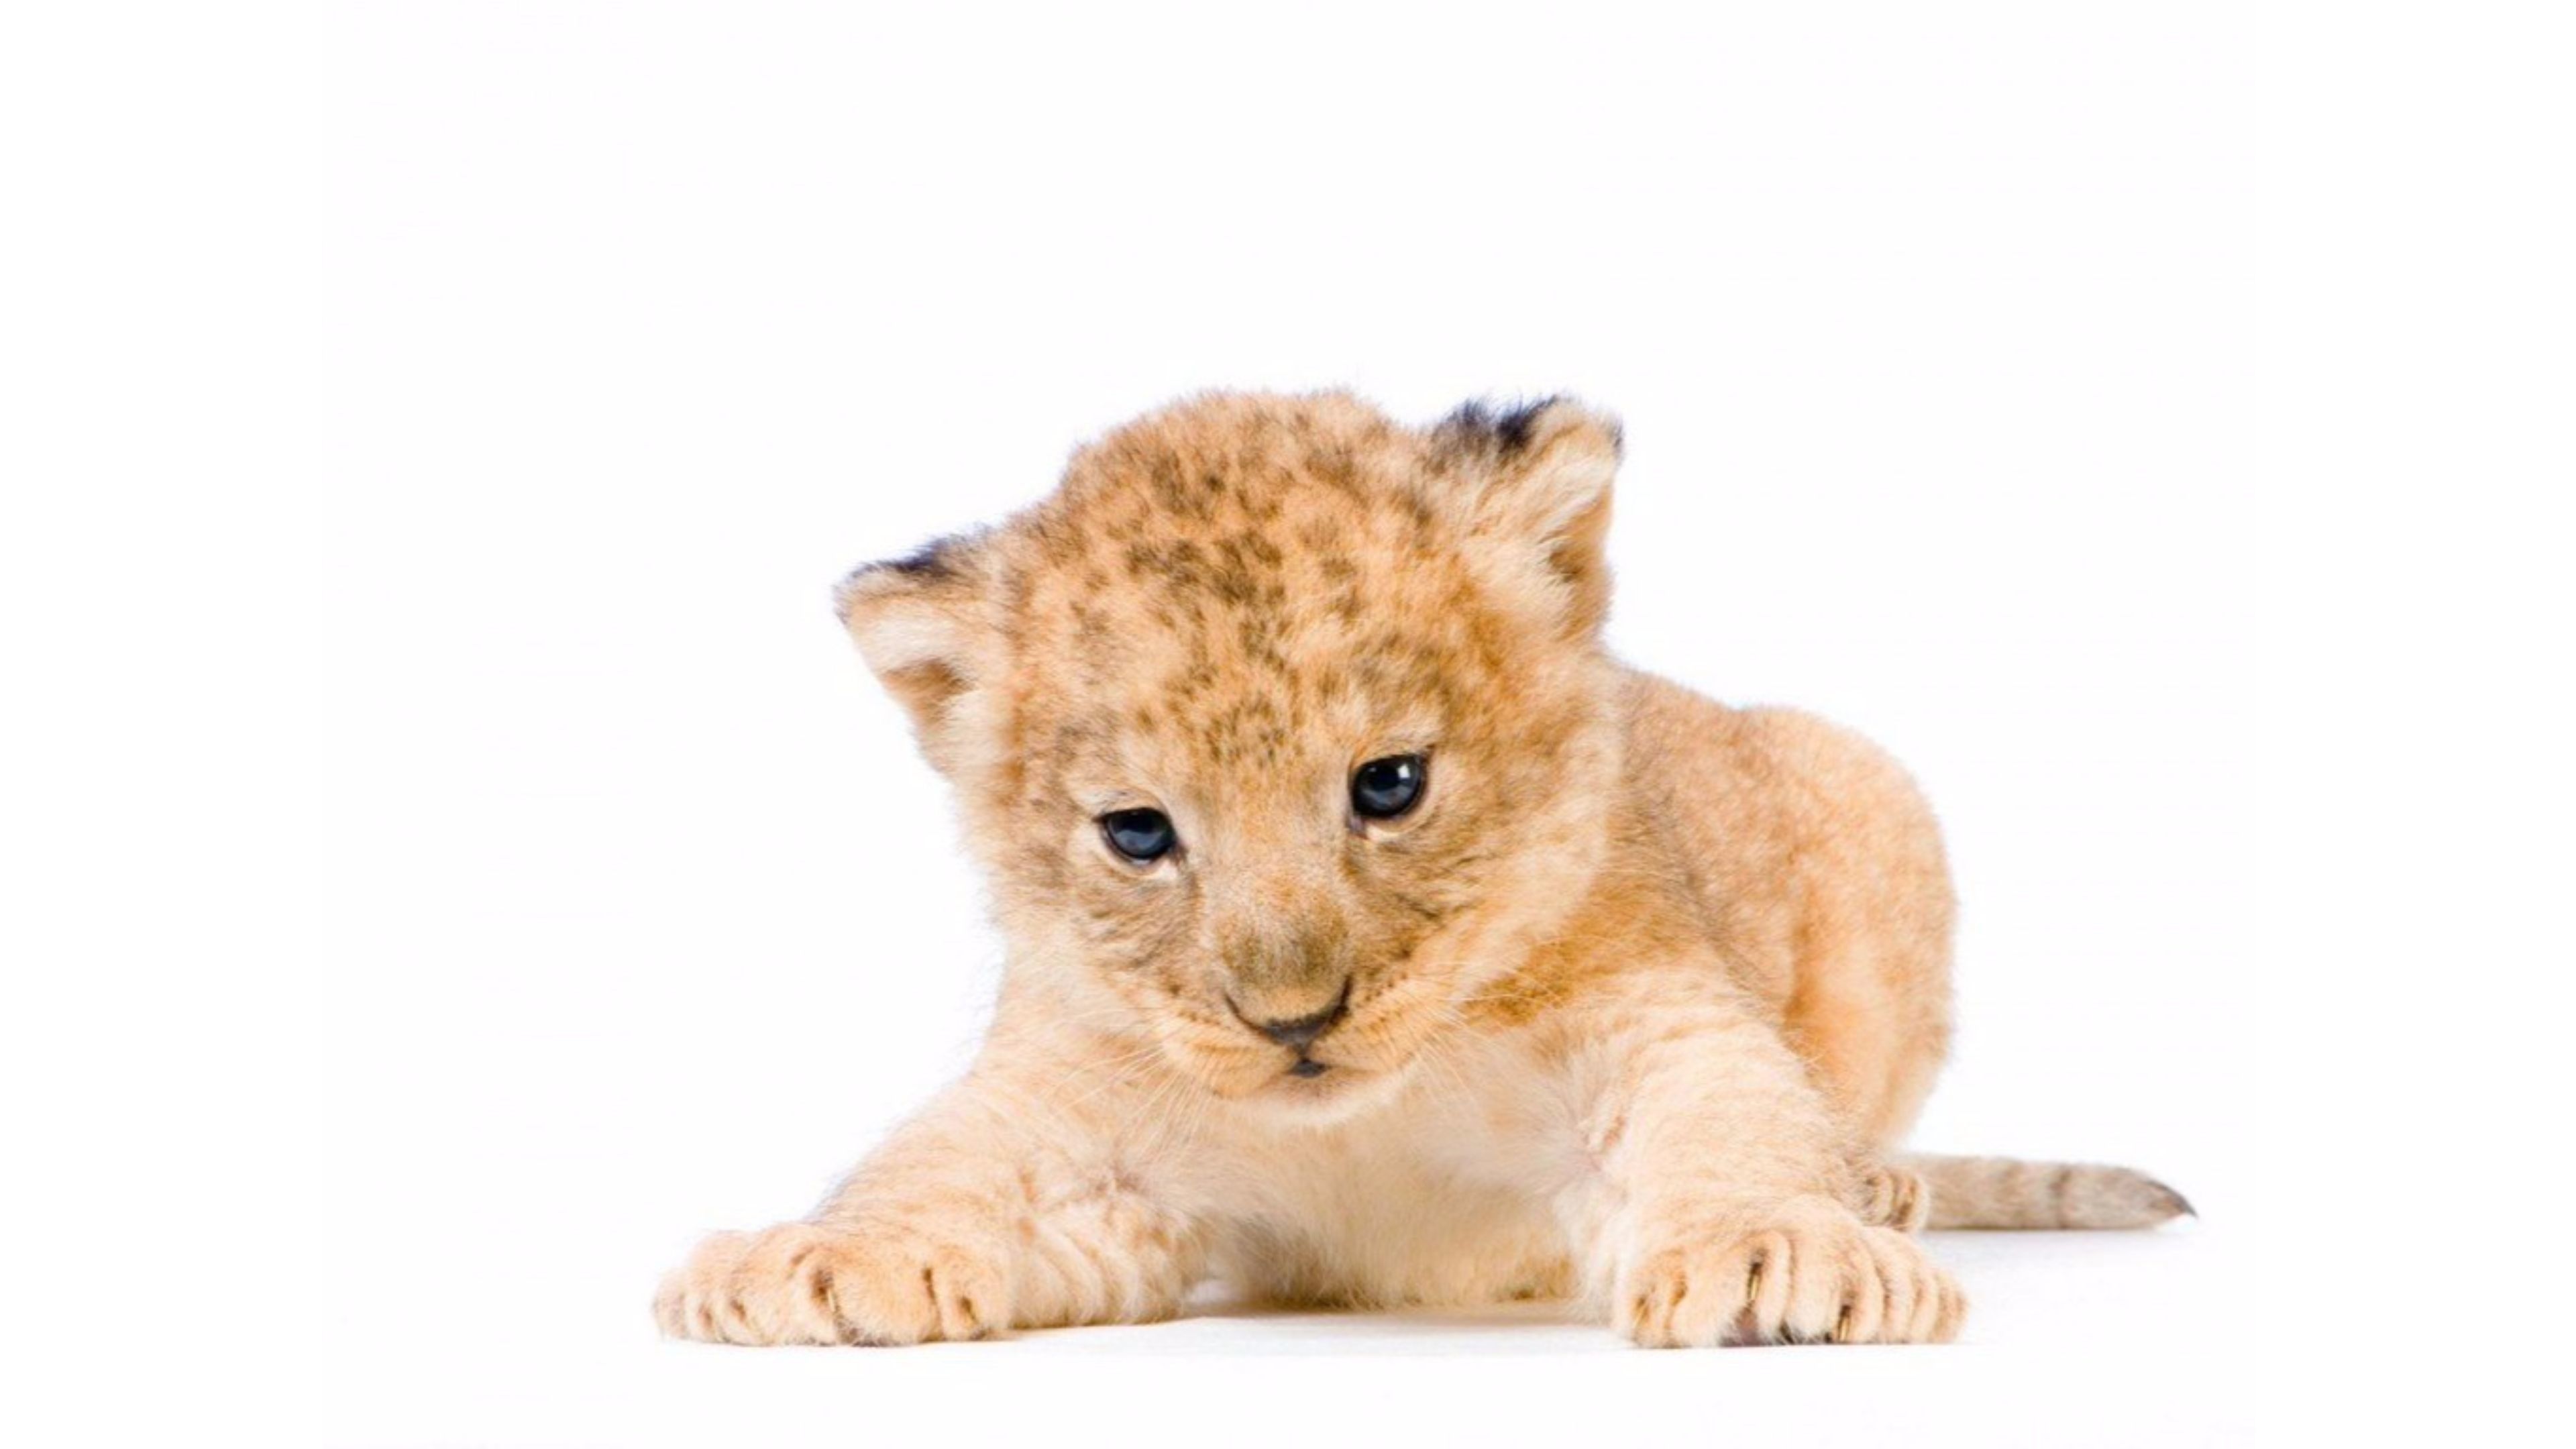 3840x2160 Adorable Lion Cub 4K Wallpaper